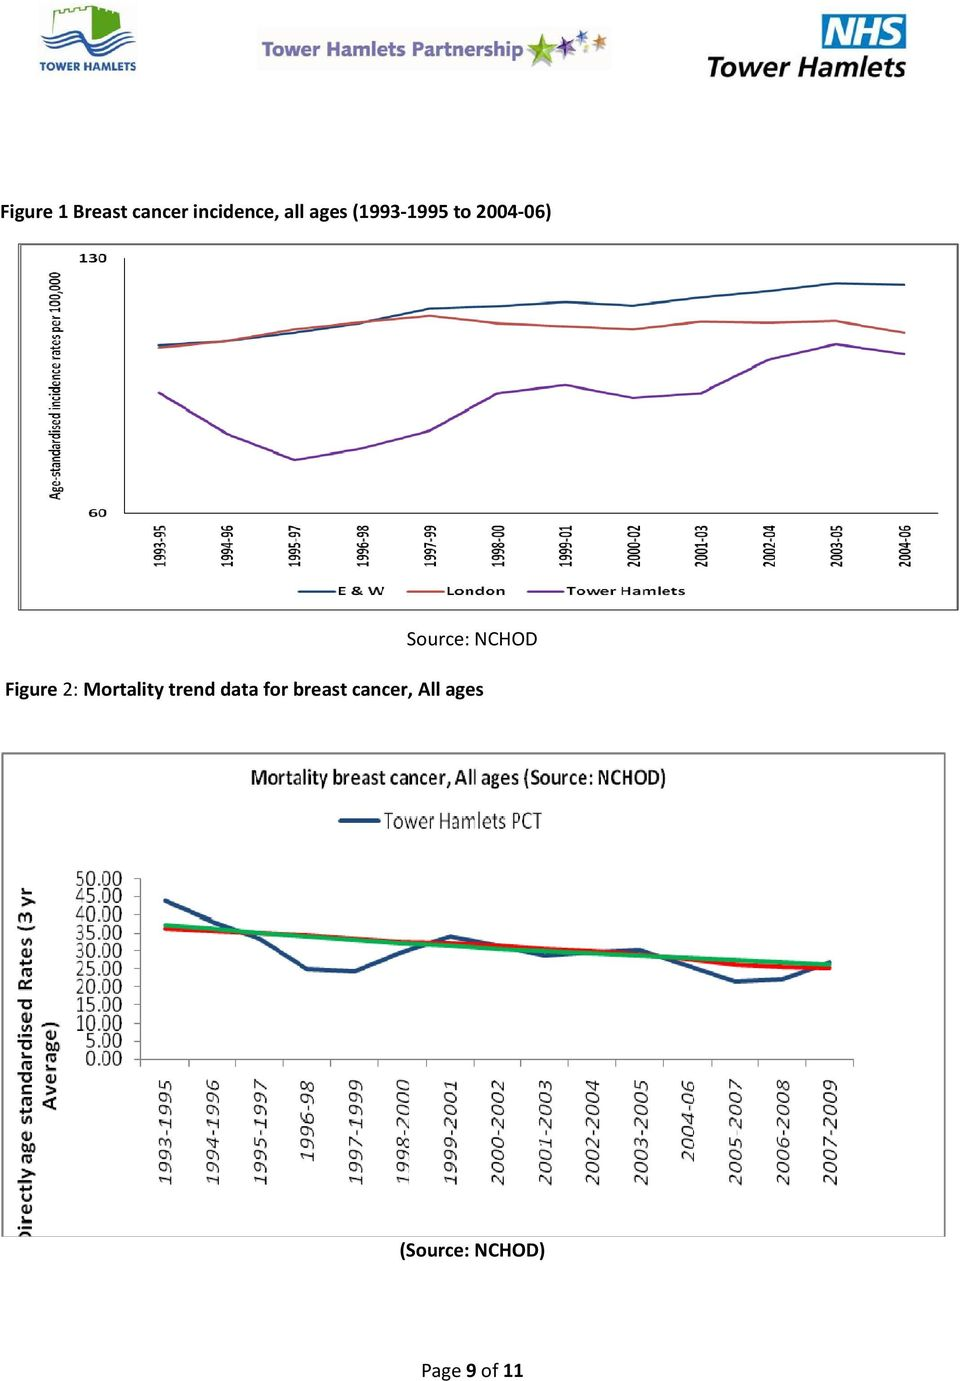 Figure 2: Mortality trend data for breast